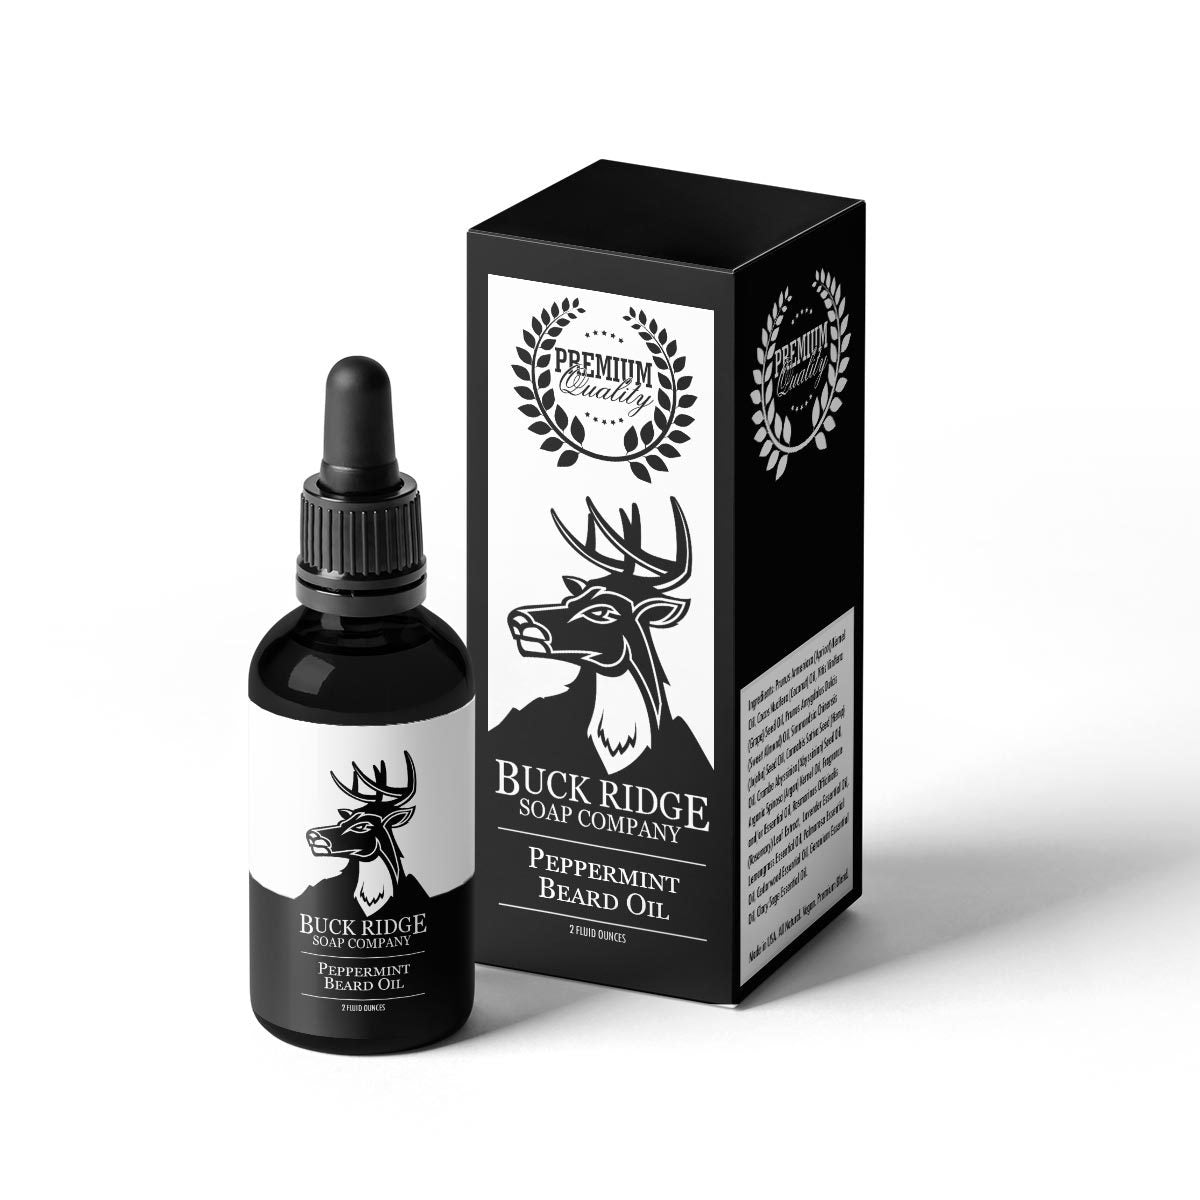 Peppermint Beard Oil